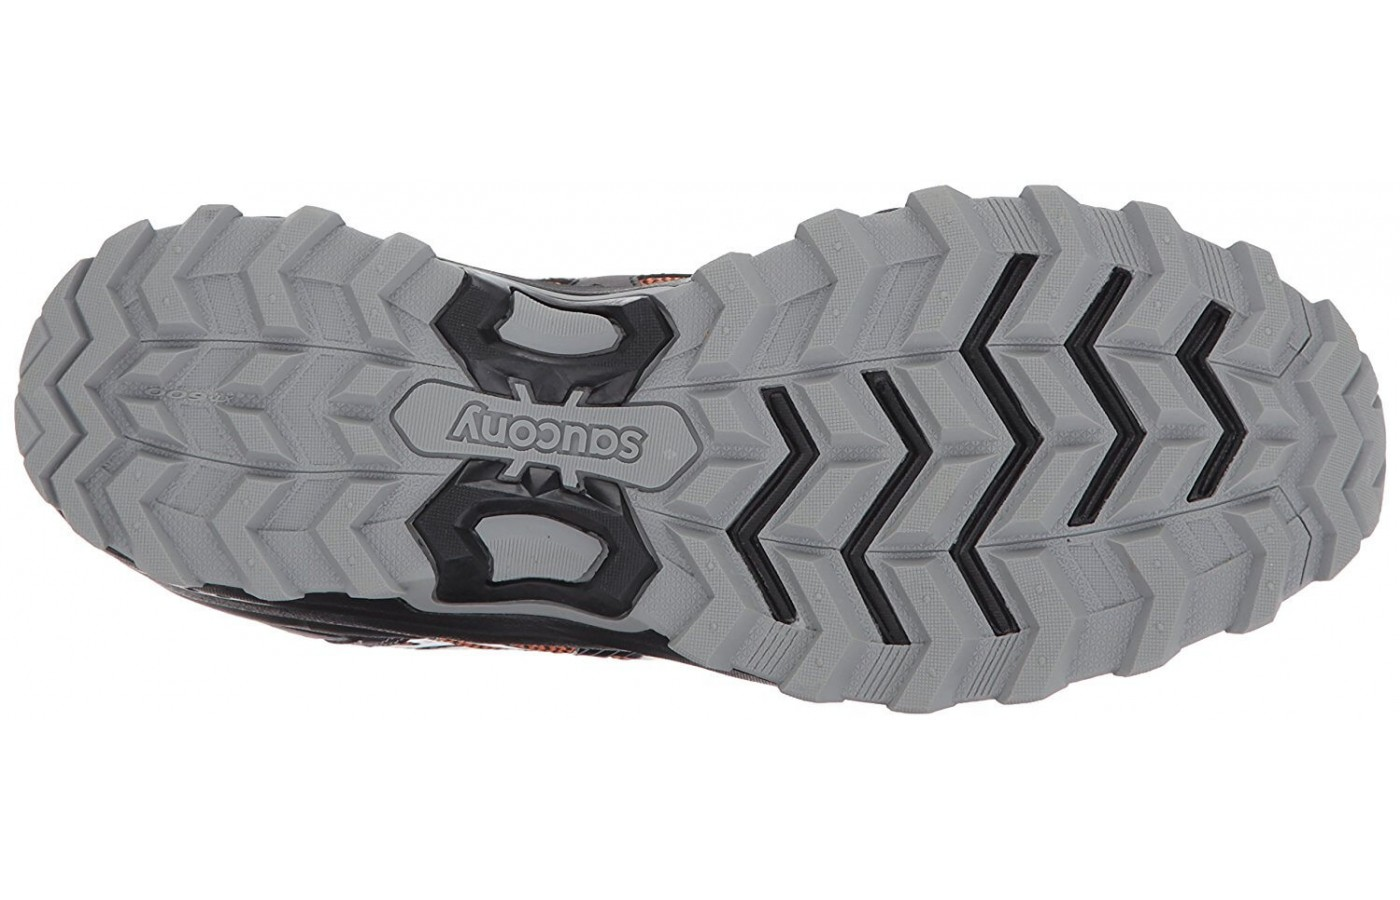 The Saucony Excursion TR11 features XT-600 rubber in its outsole